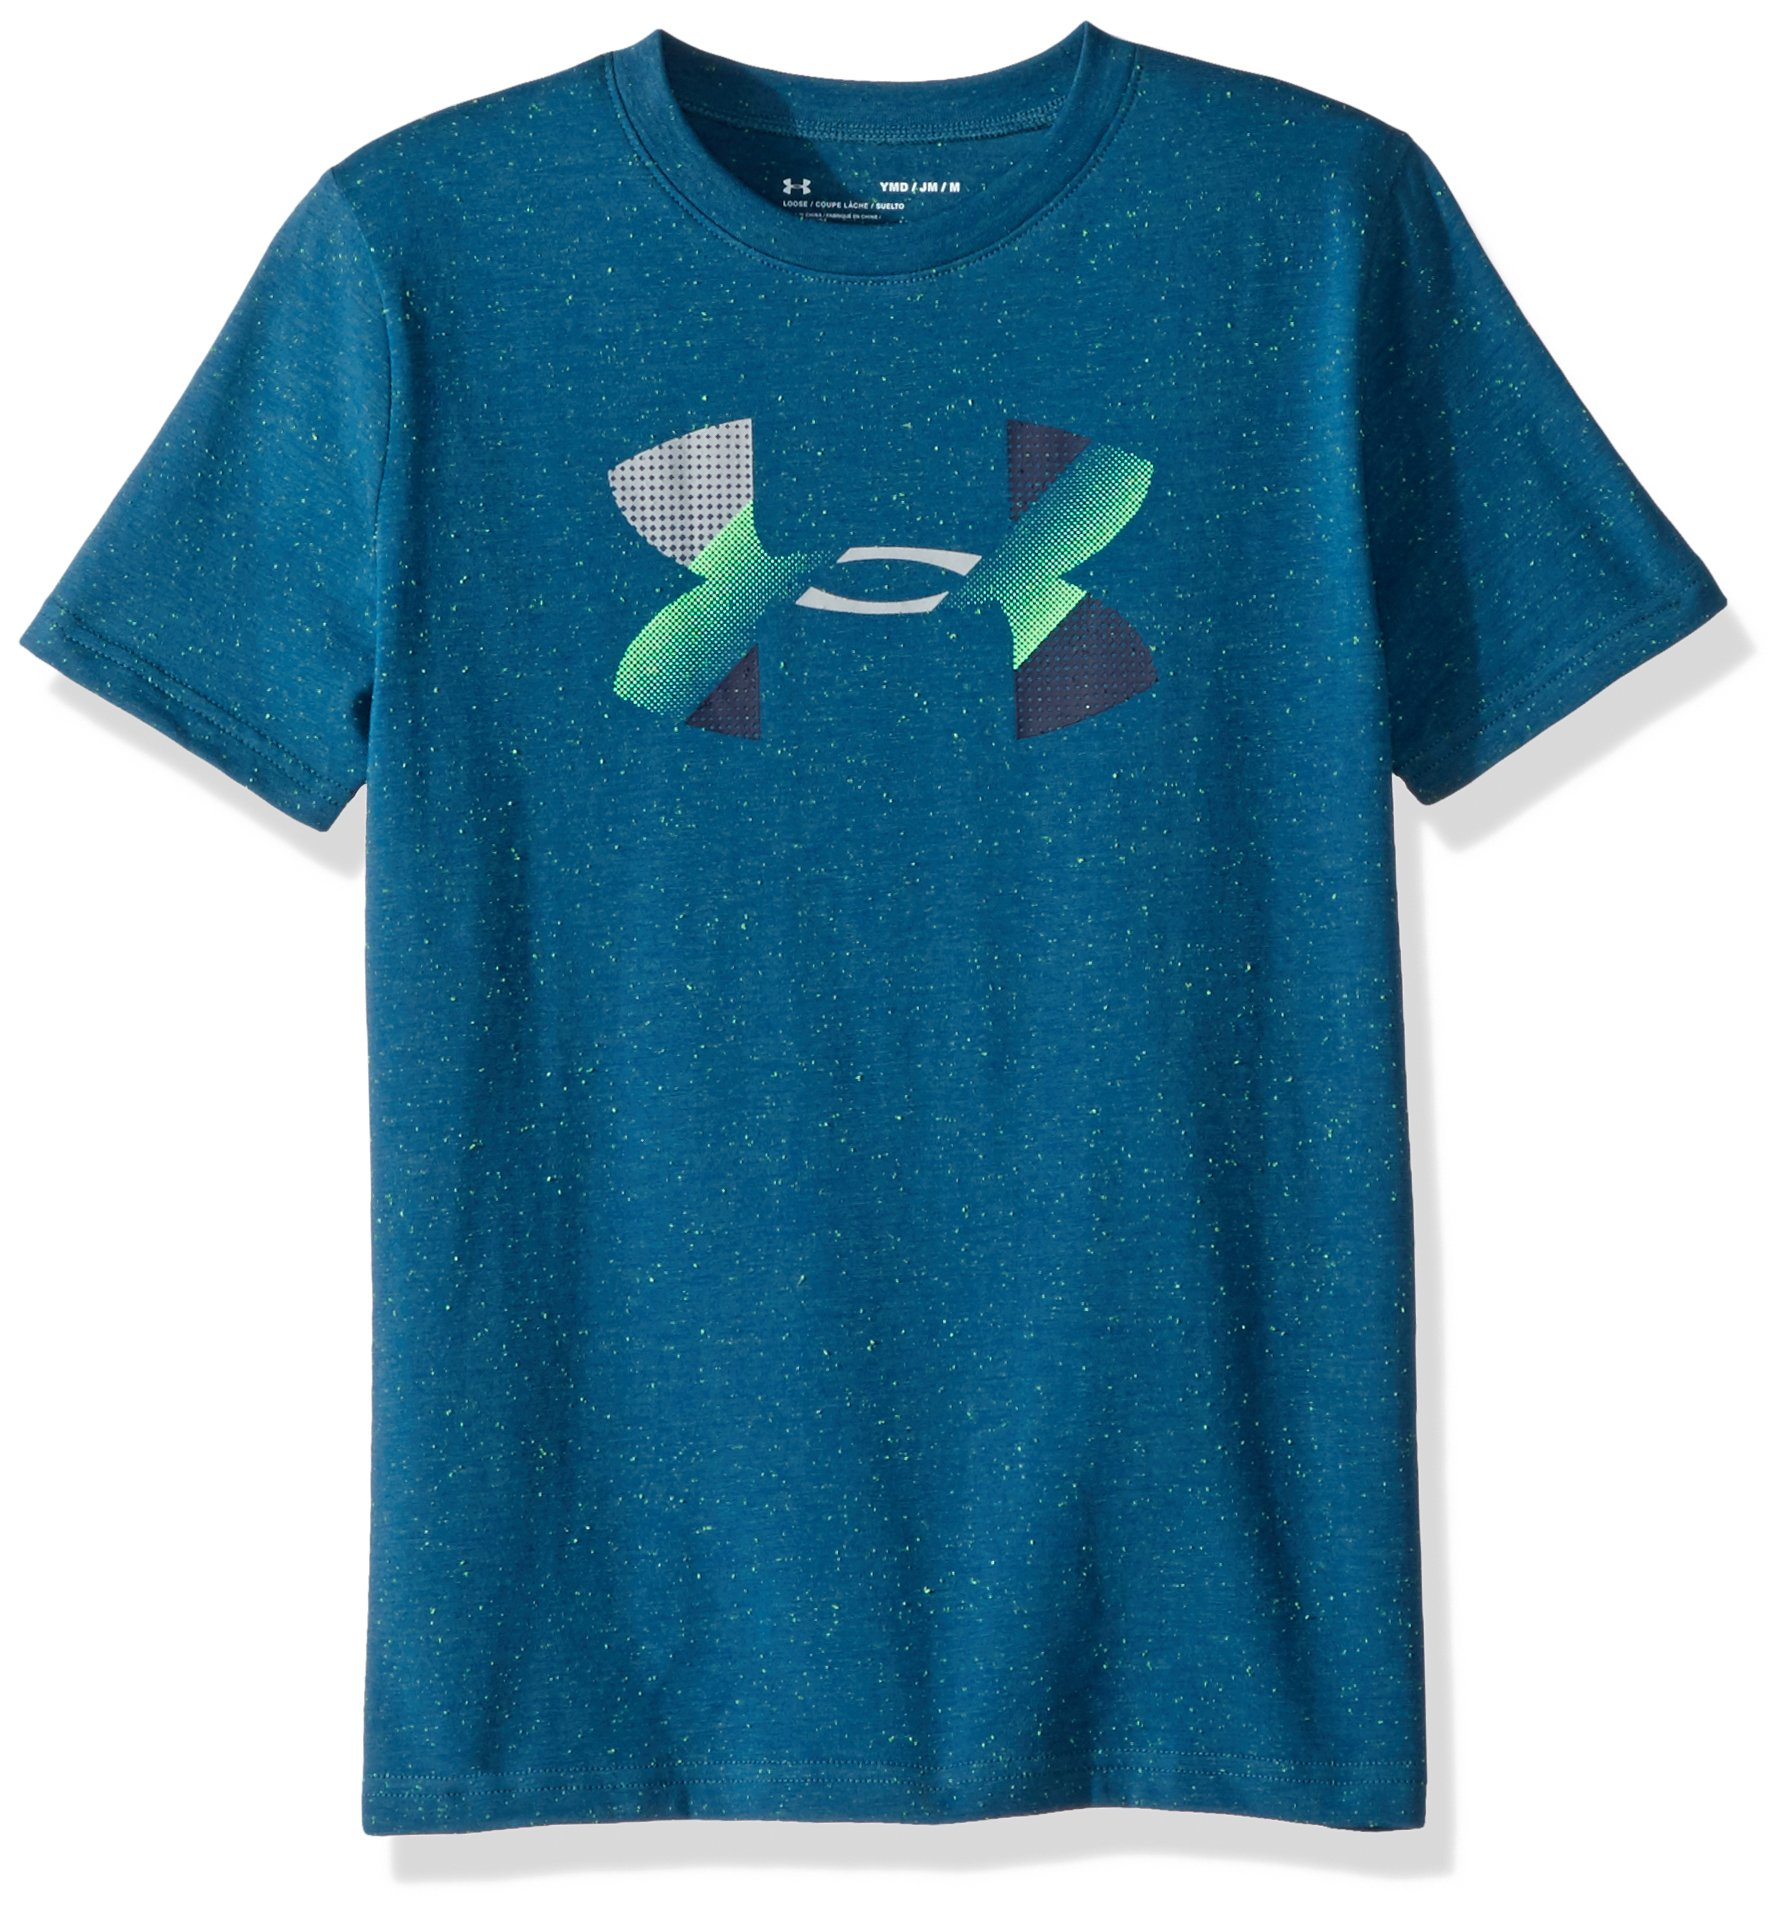 Under Armour Boys' Big Logo T-Shirt, Moroccan Blue (487)/Arena Green, Youth Large